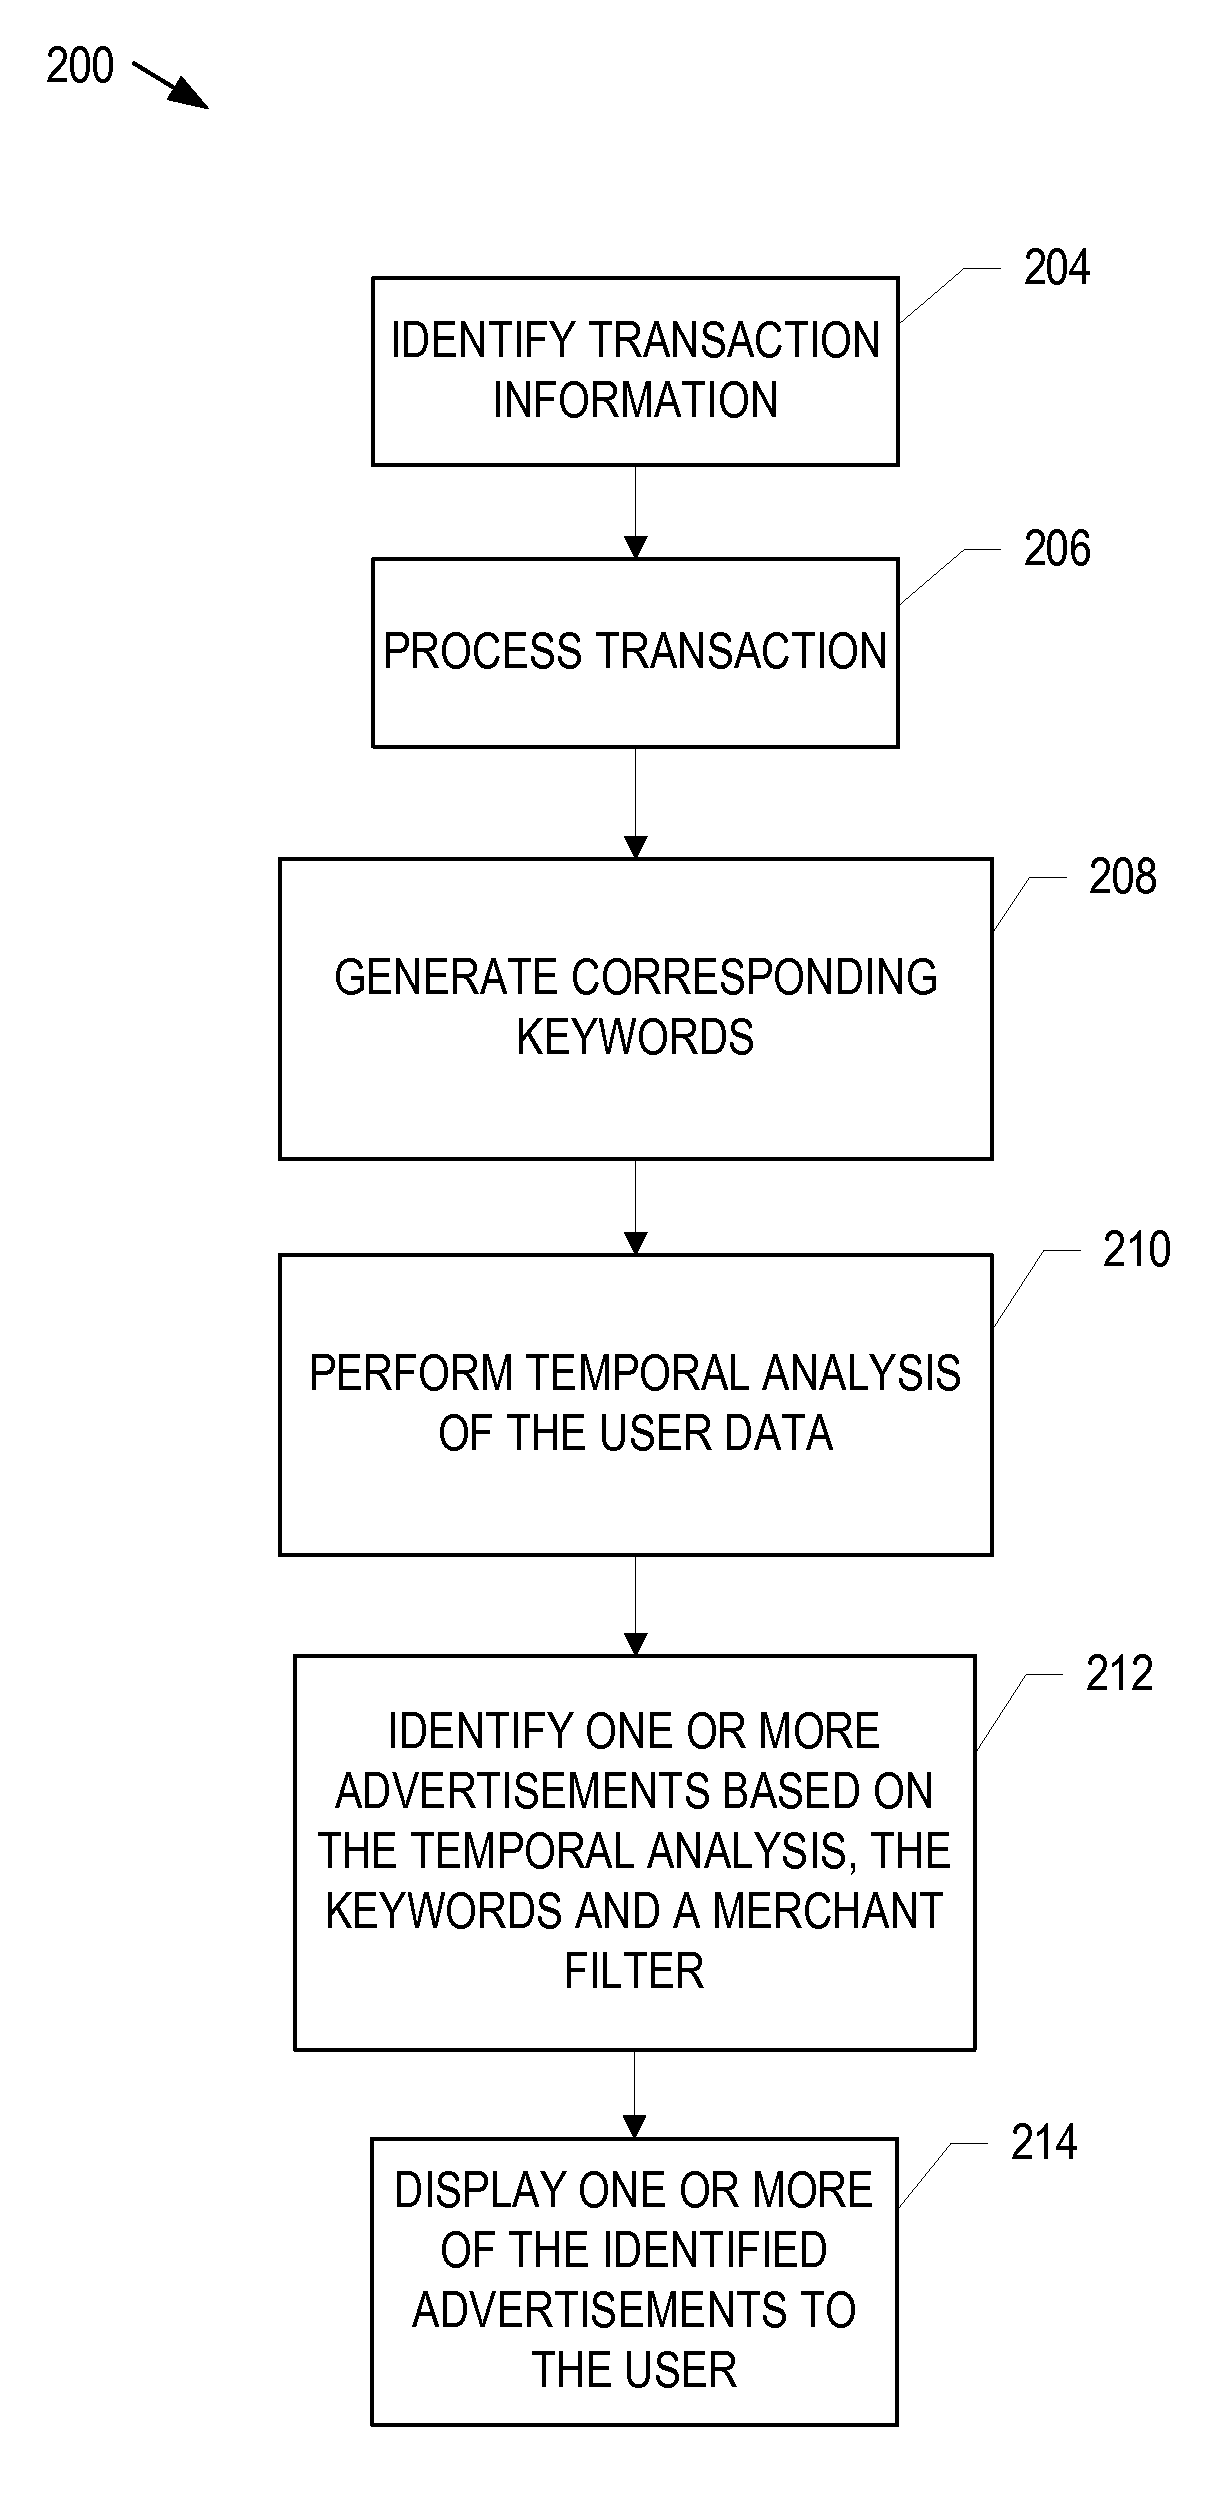 Targeted advertising using temporal analysis of user specific data  - US-9691084-B1